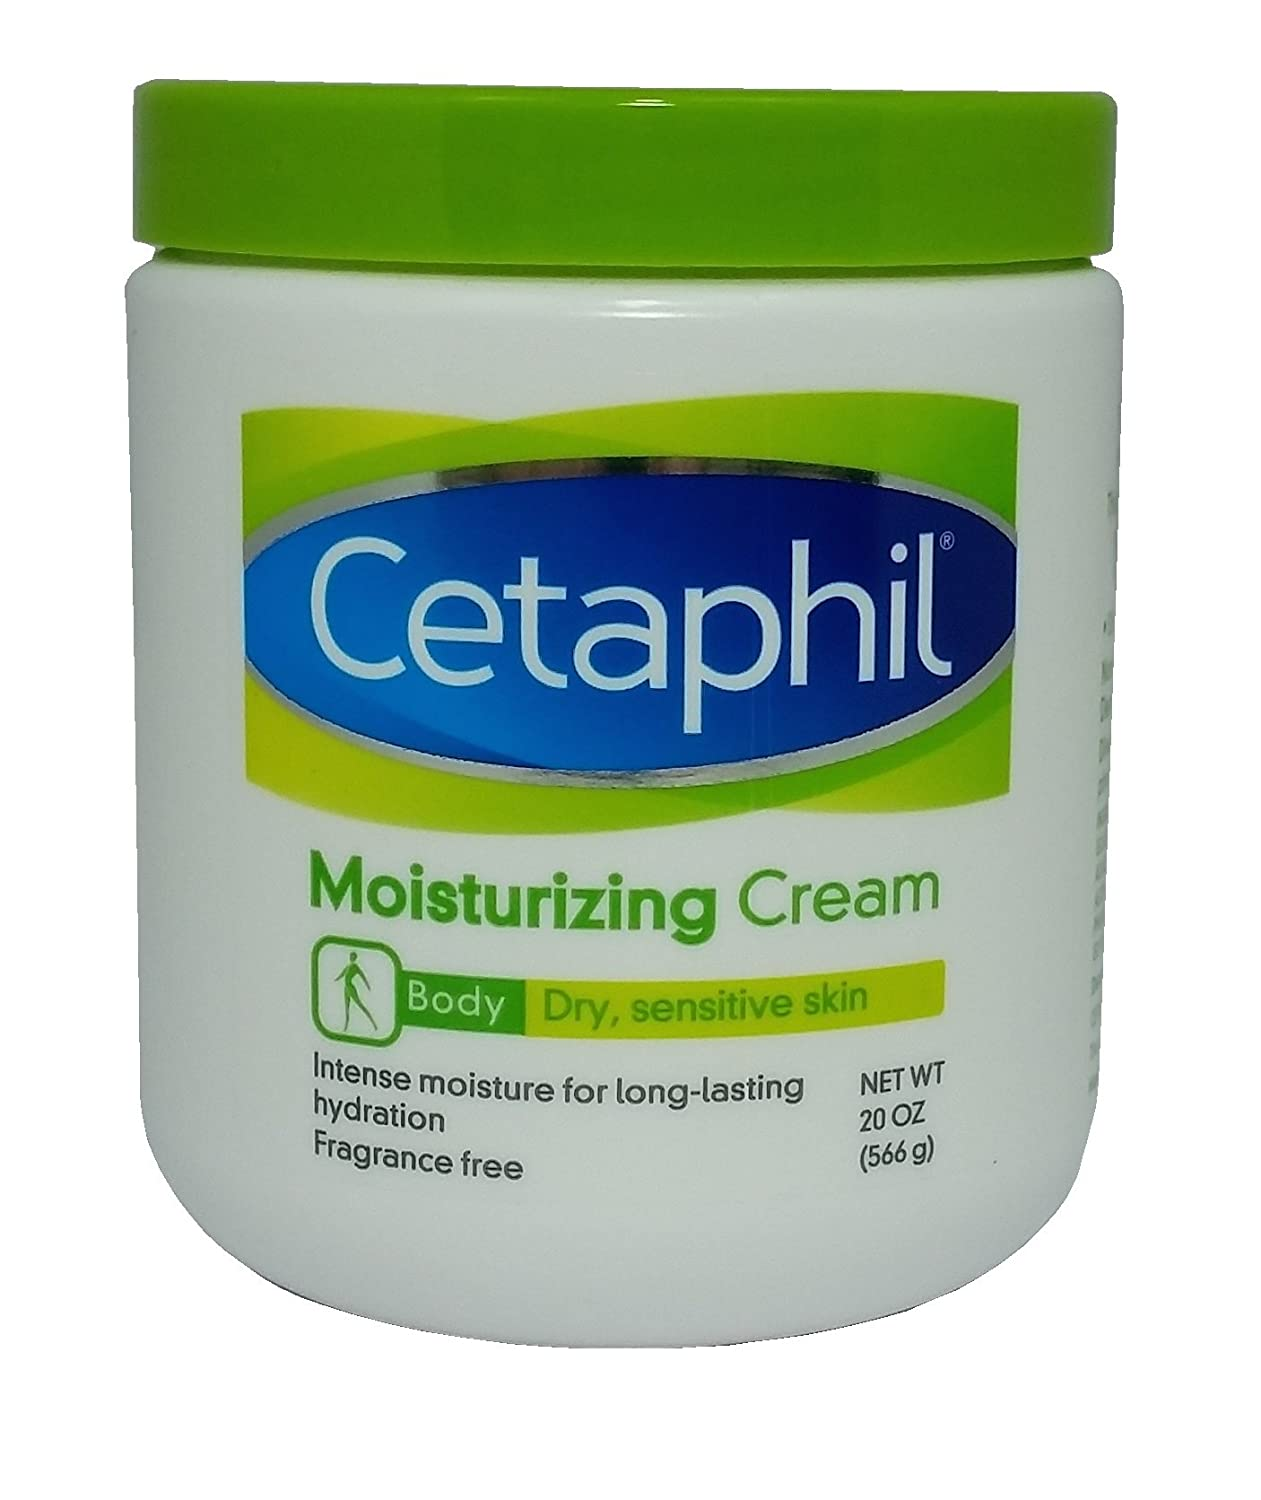 (2) Jars 40oz 1132g Cetaphil Moisturizing Skin Cream Pack of 2x 20oz 71ed4OYkrVL